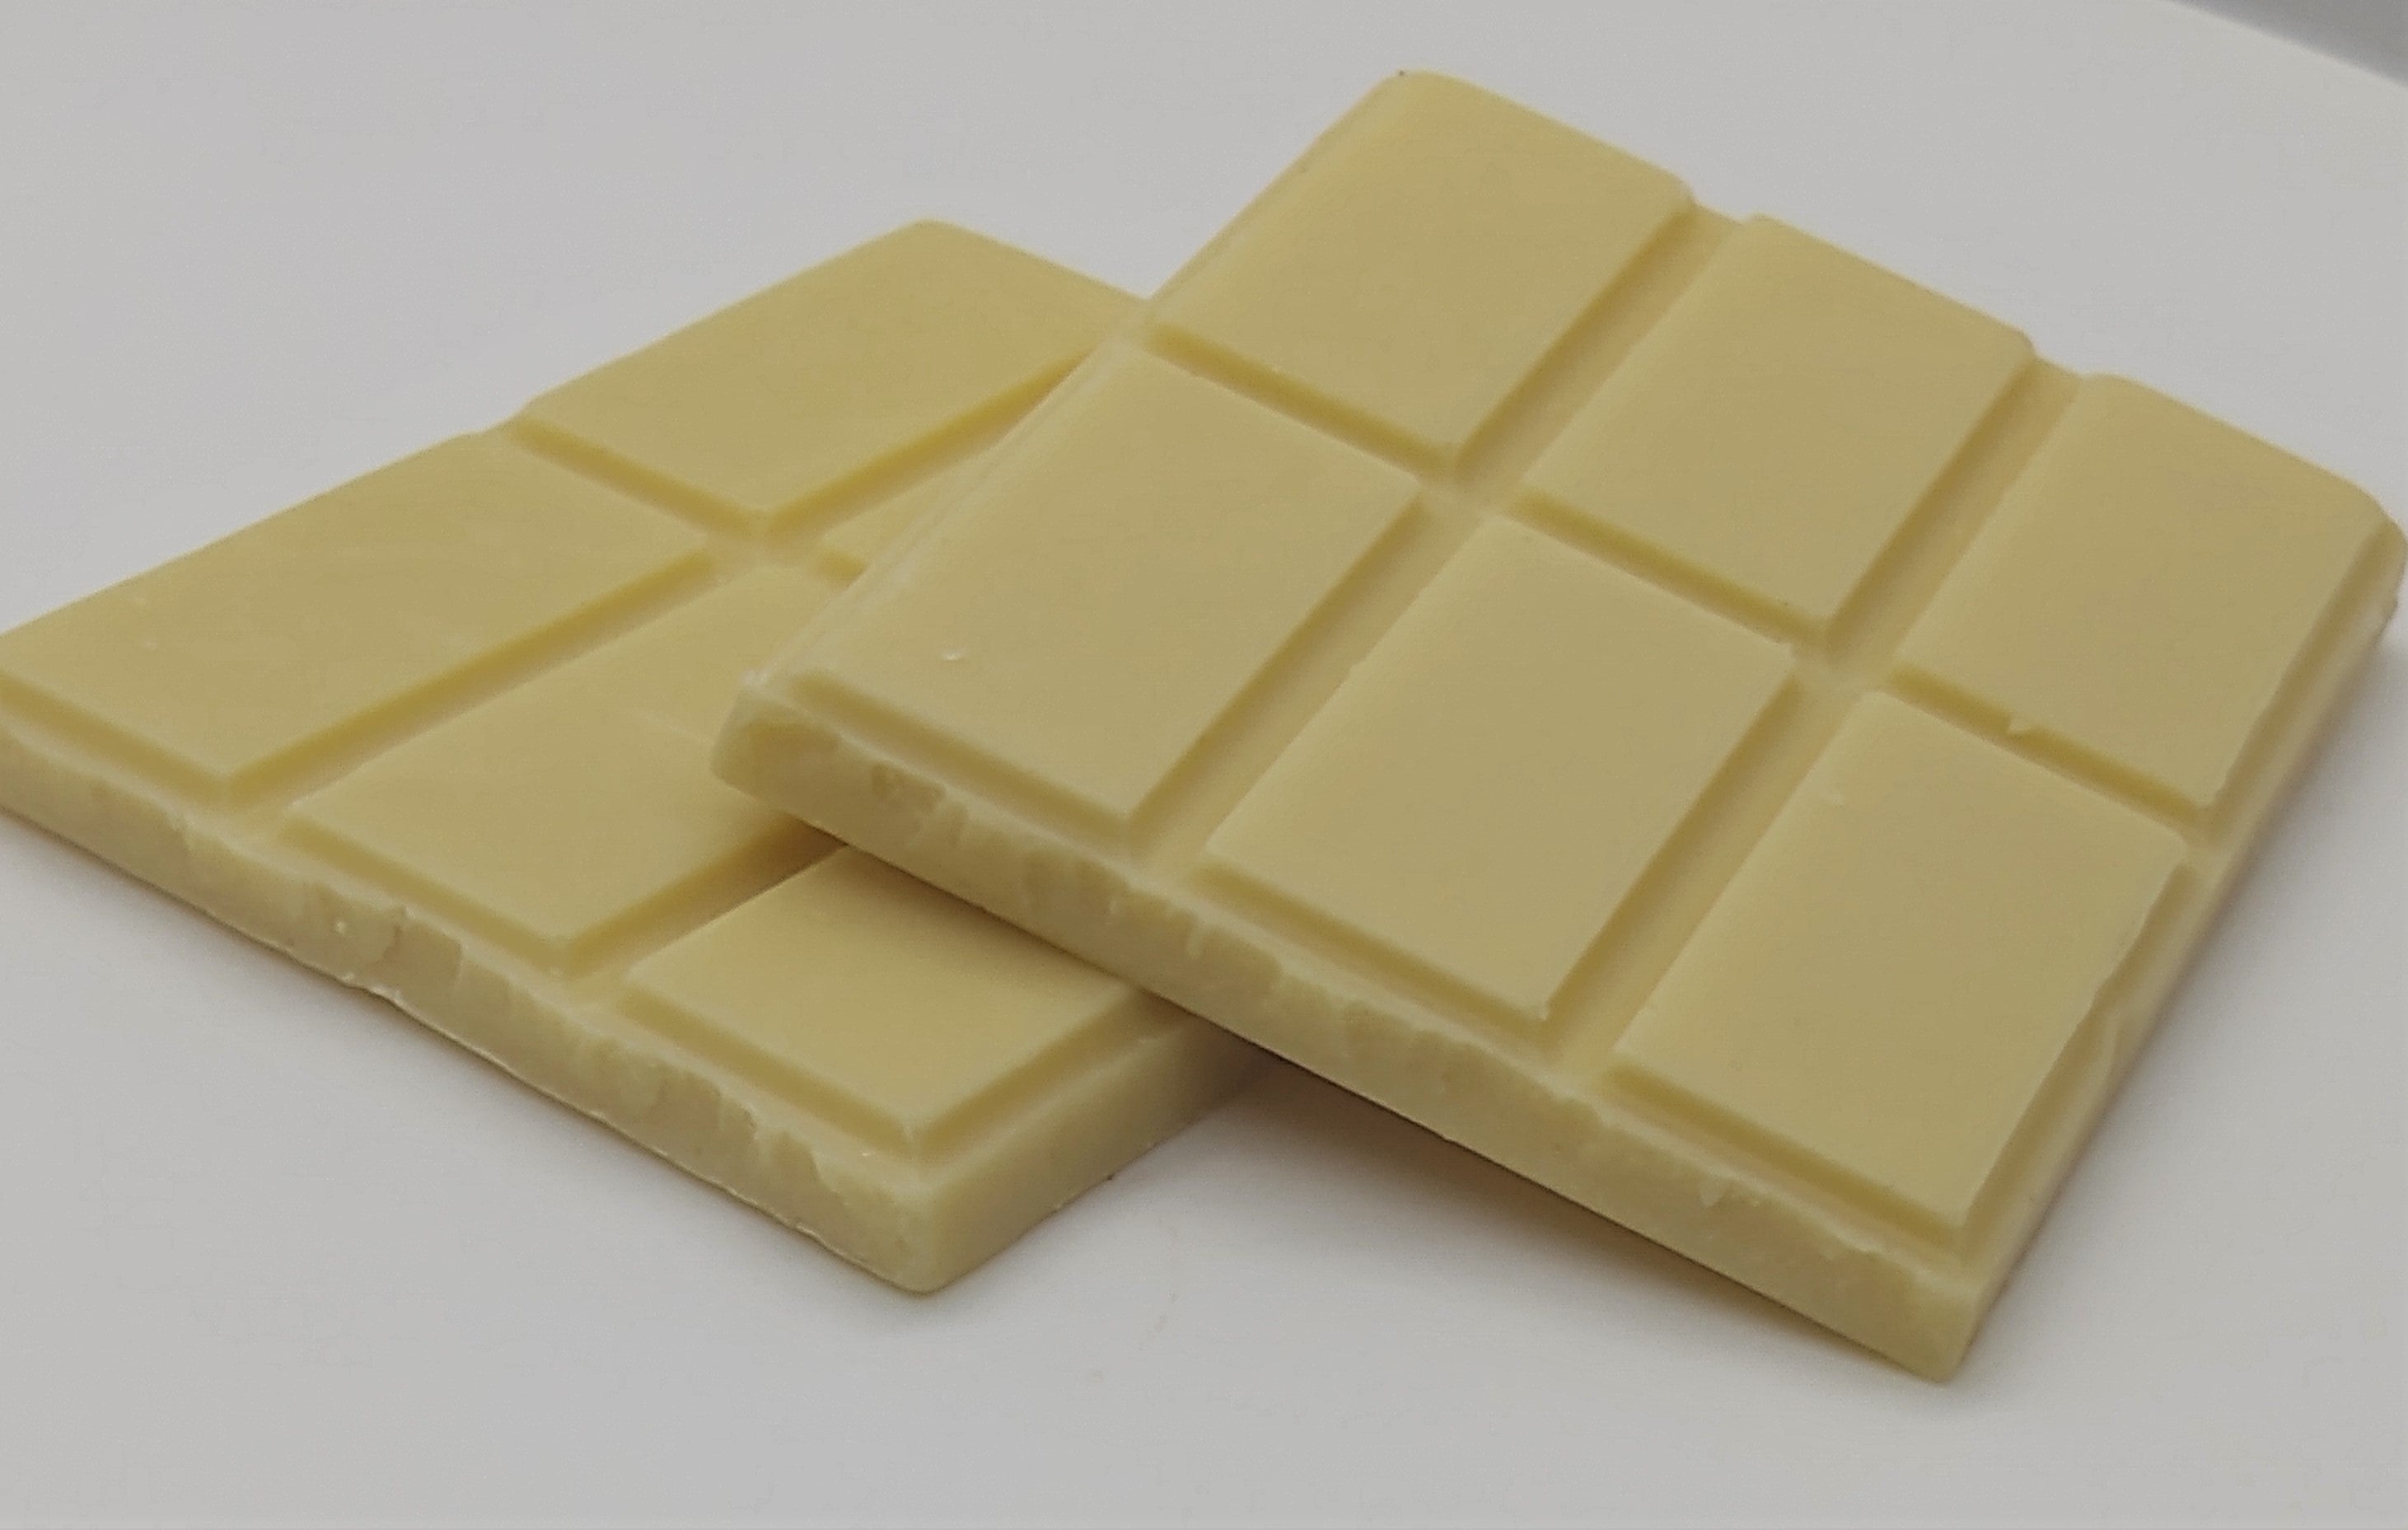 Pictured: a solid white chocolate bar